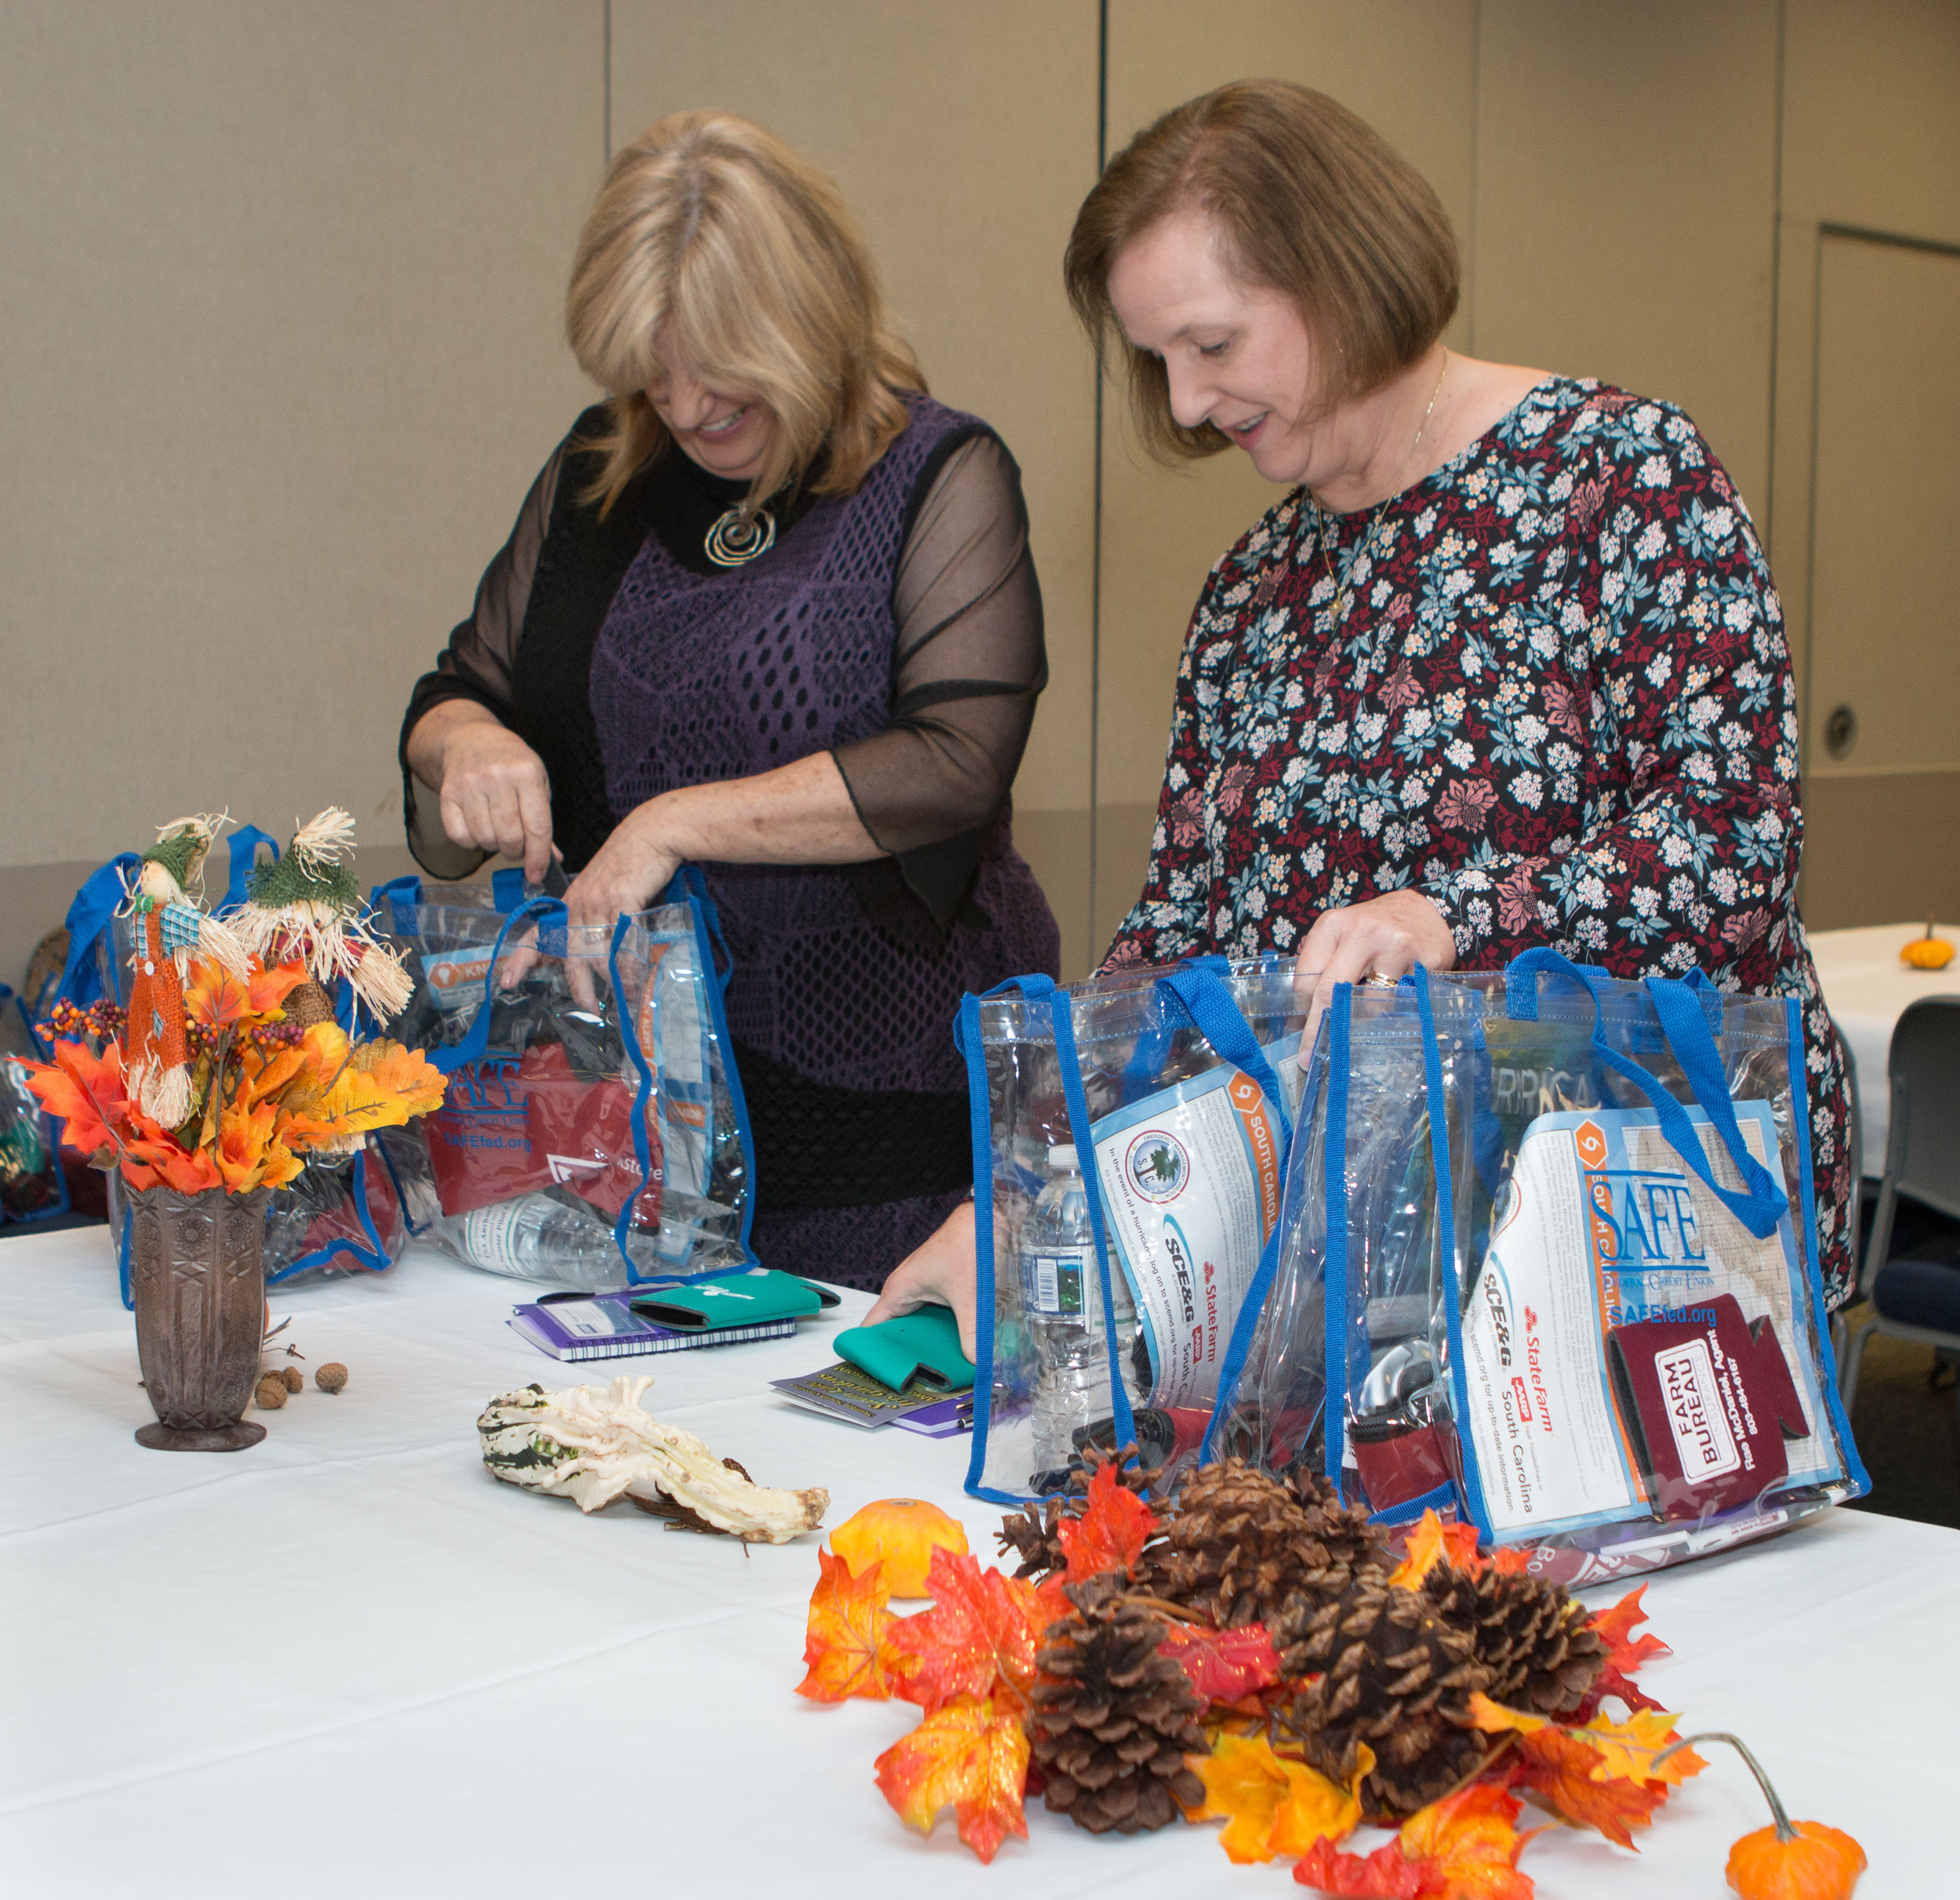 Sumter Pilot Club members Carolyn Bishop-McLeod, left, and Beth Justice fill gift bags for caregivers at the event.